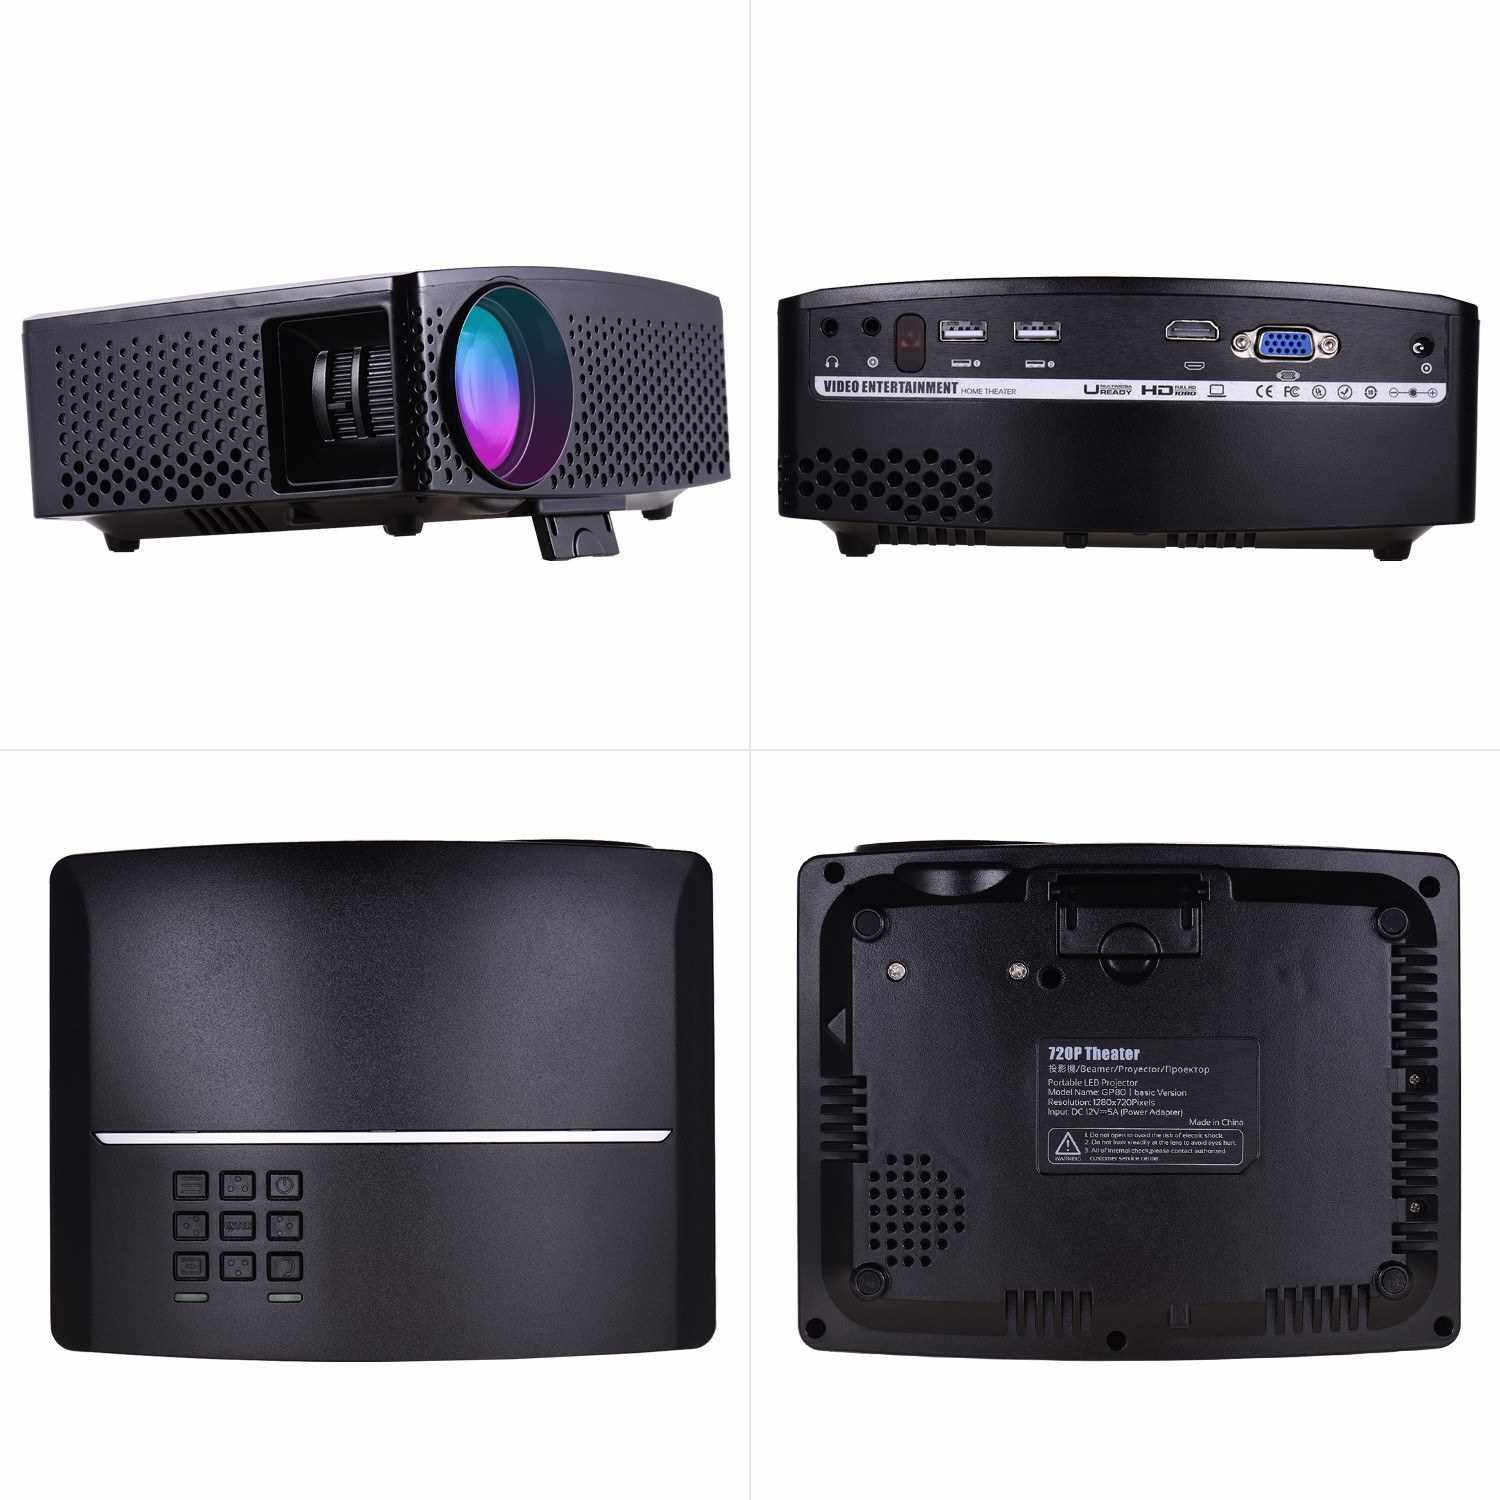 GP80 Mini LED Video Projector 1080P Supported 3500 Lumens 120 Inch Display Built-in Stereo Speaker with AV/USB/HD/VGA Interface Portable Movie Projector for Home Theater Entertainment (Black)